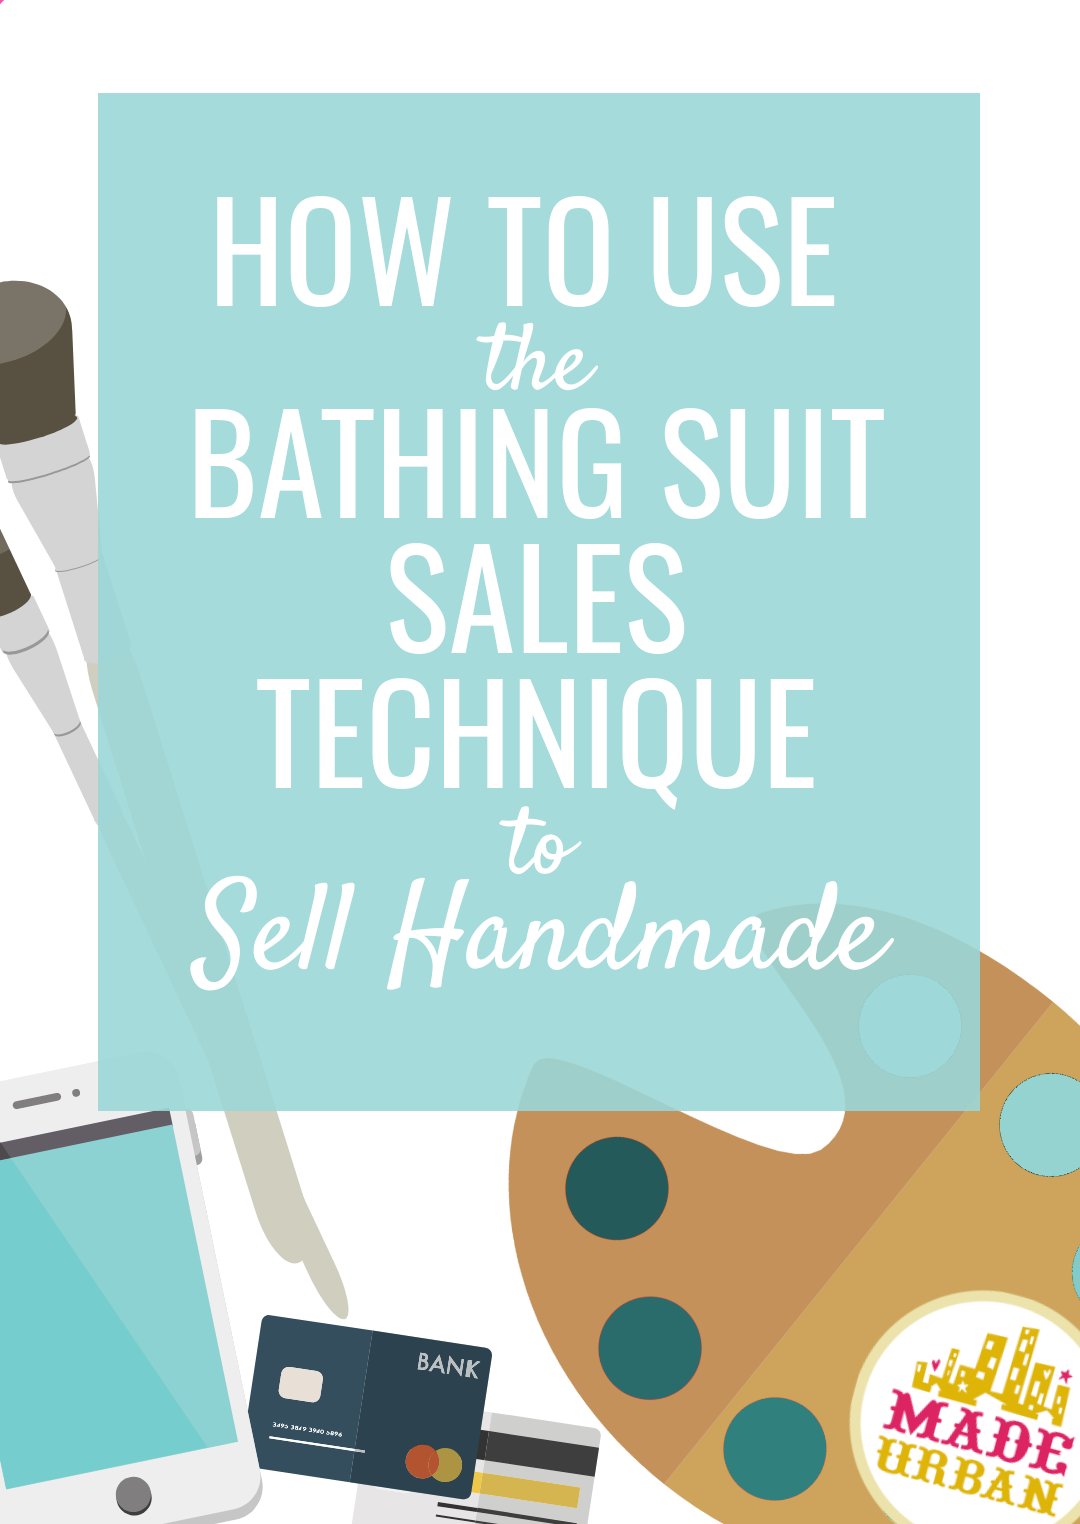 How to Implement the Bathing Suit Sales Technique